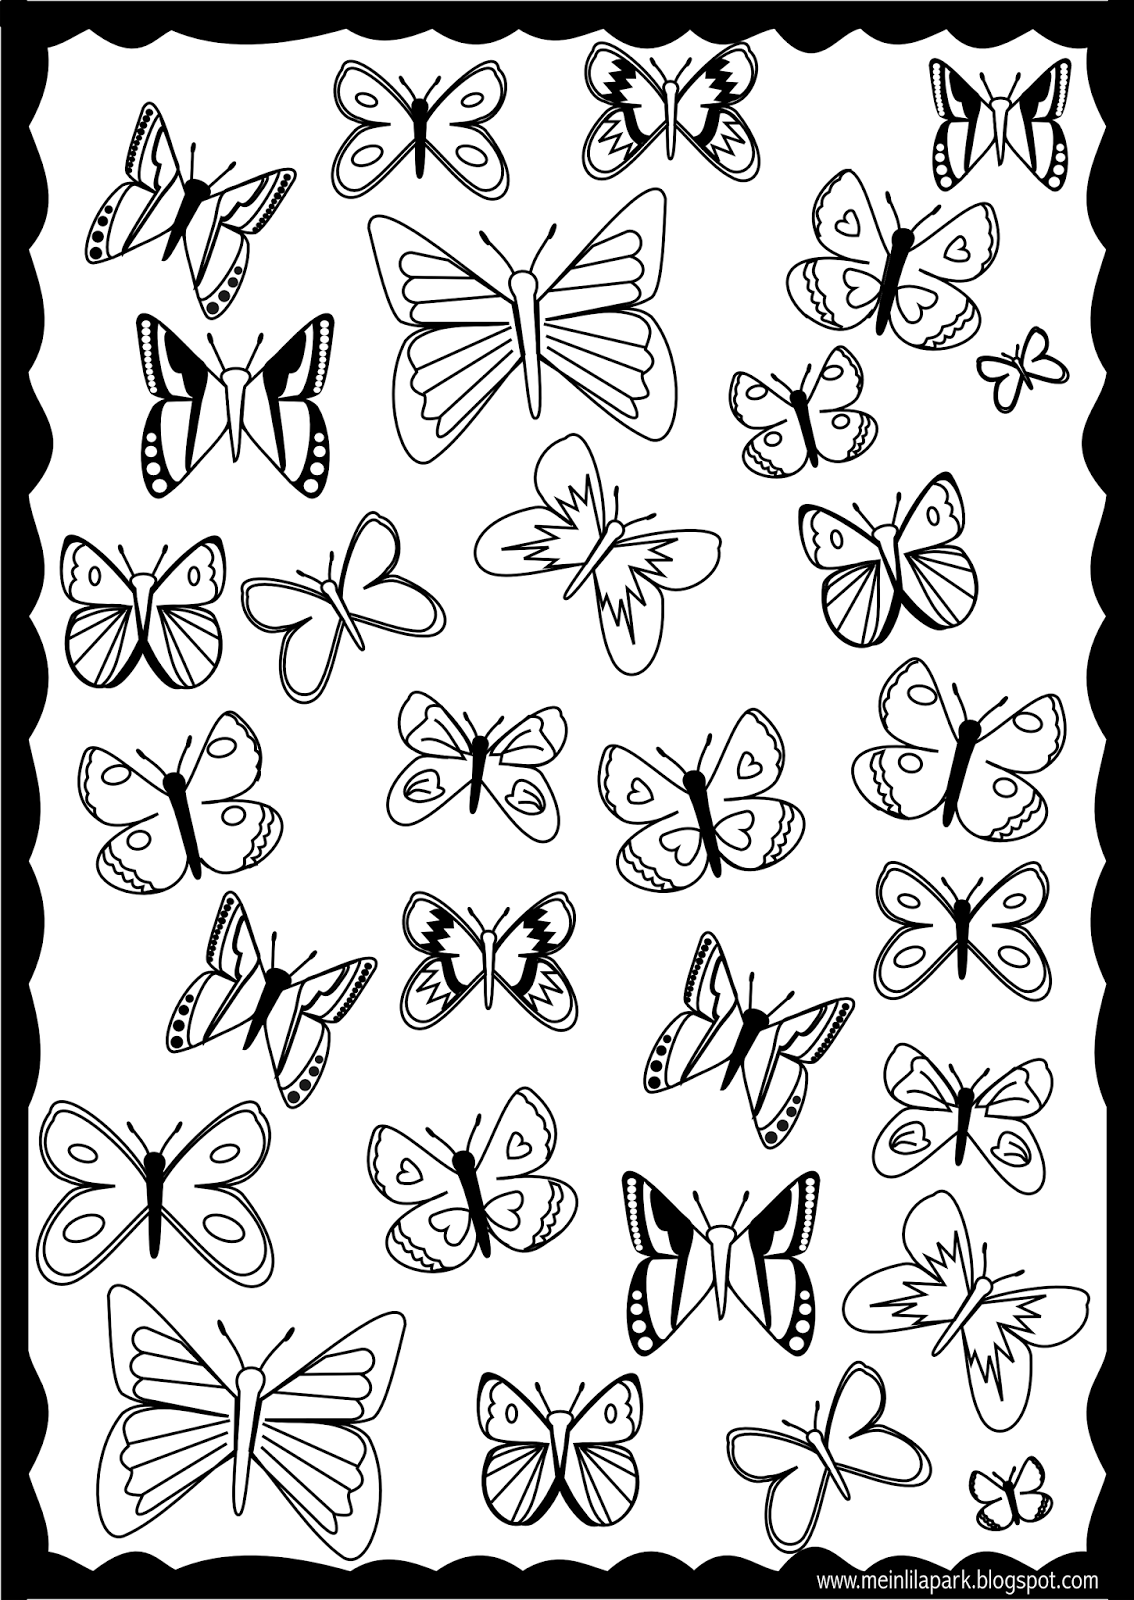 butterfly coloring sheet printable monarch butterfly coloring pages to print free coloring sheet butterfly printable coloring